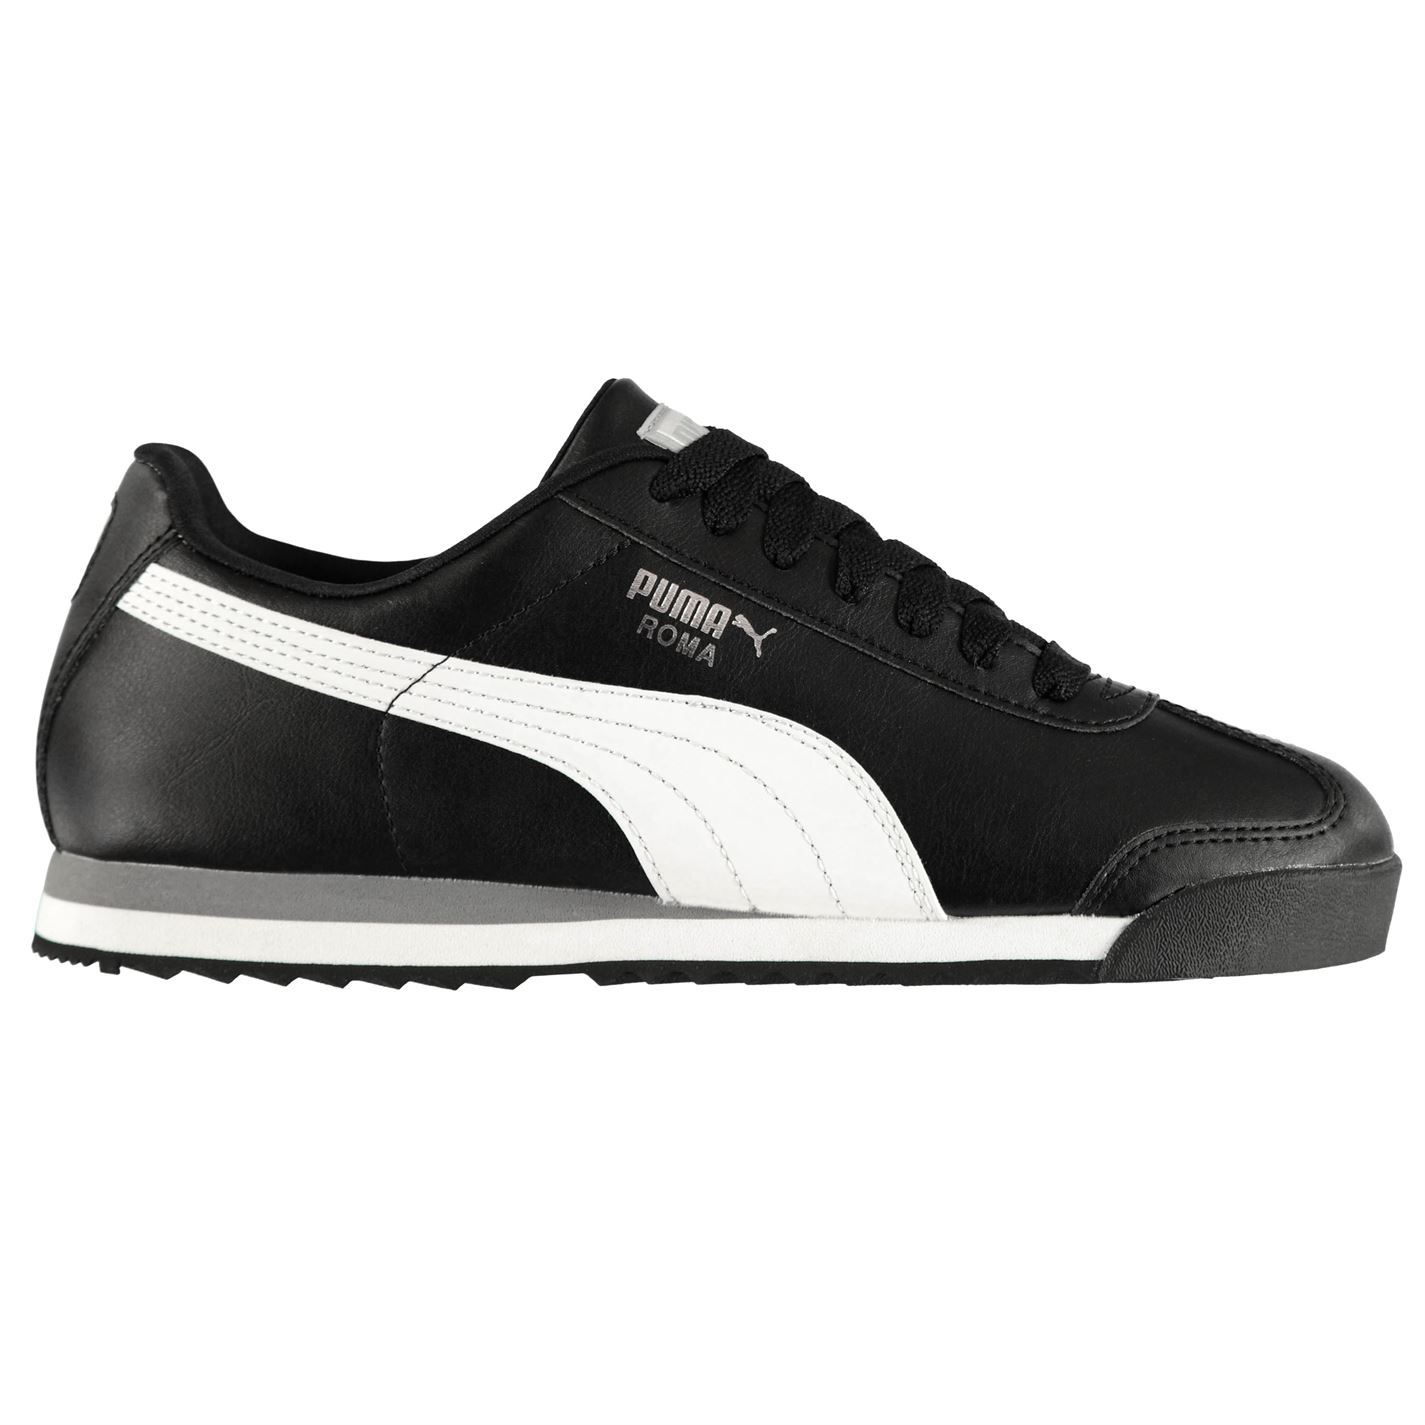 Puma-Roma-Basic-Trainers-Mens-Athleisure-Footwear-Shoes-Sneakers thumbnail 11